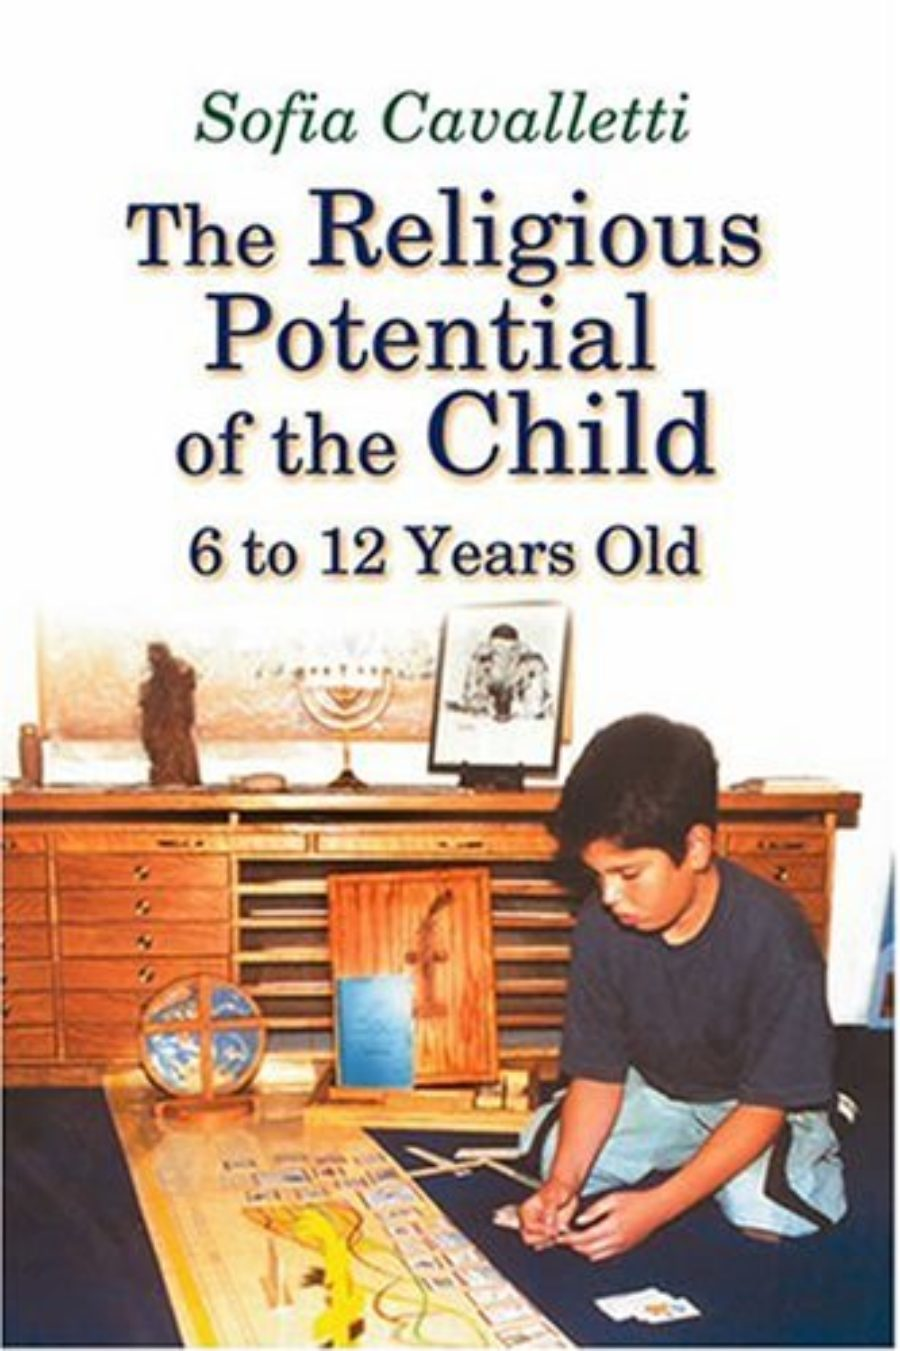 Cover of The Religious Potential of the Child, 6 to 12 Years Old (Catechesis of the Good Shepherd Publications)